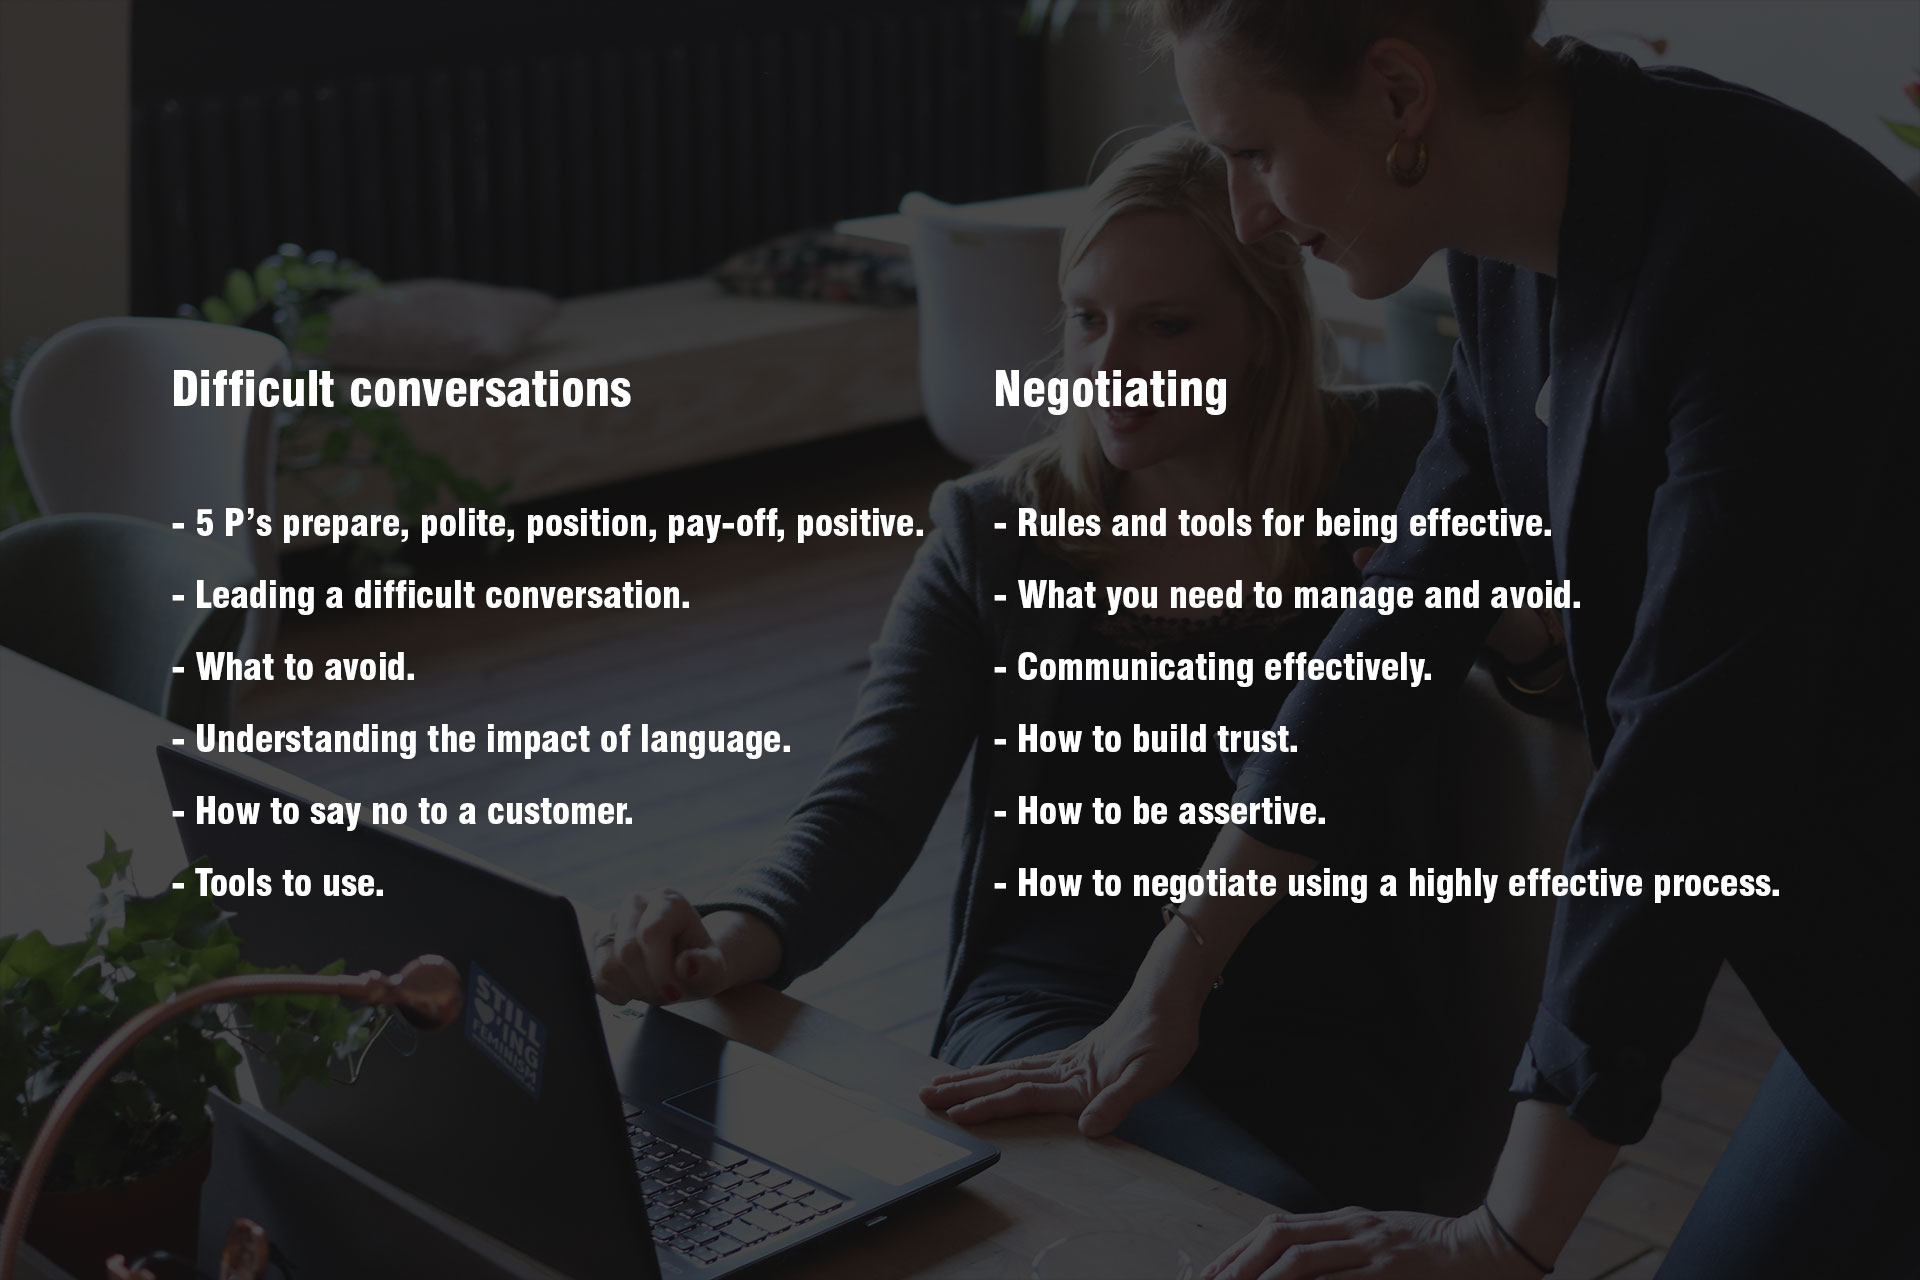 Difficult conversations and negotiating modules and tools